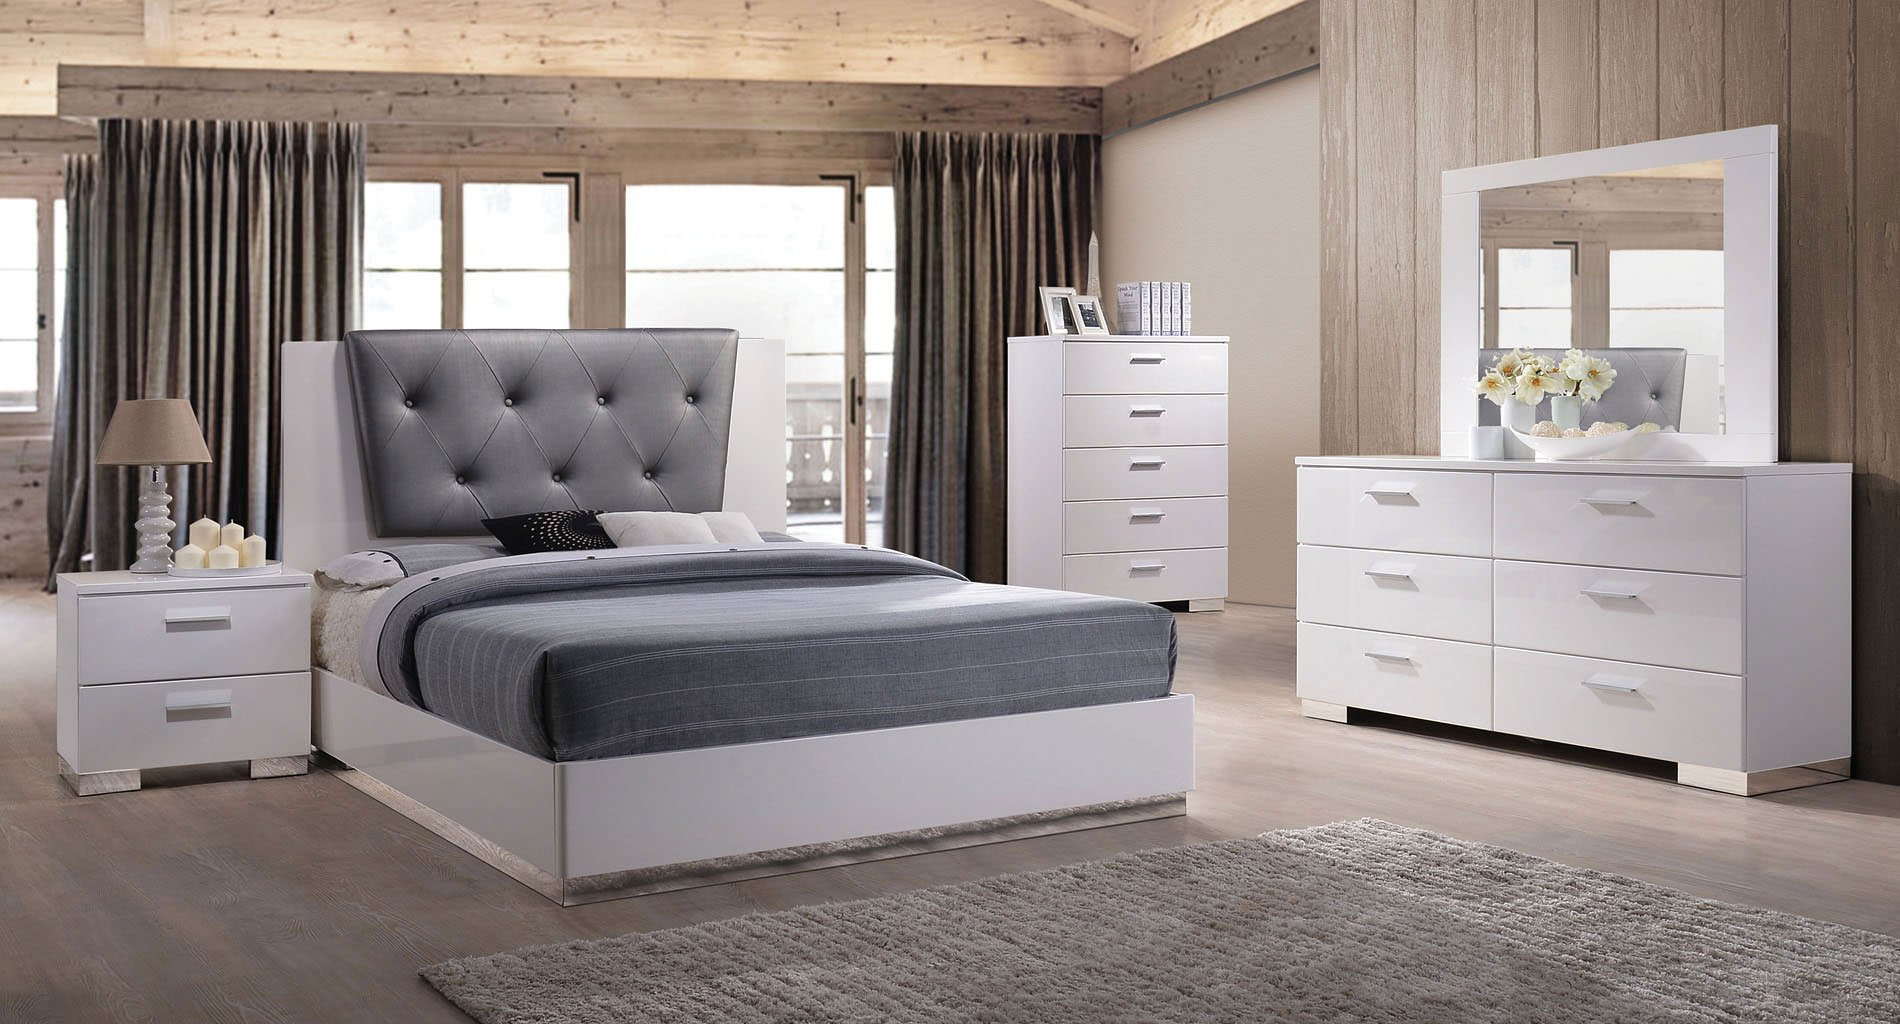 Delicieux Lorimar II Low Profile Bedroom Set